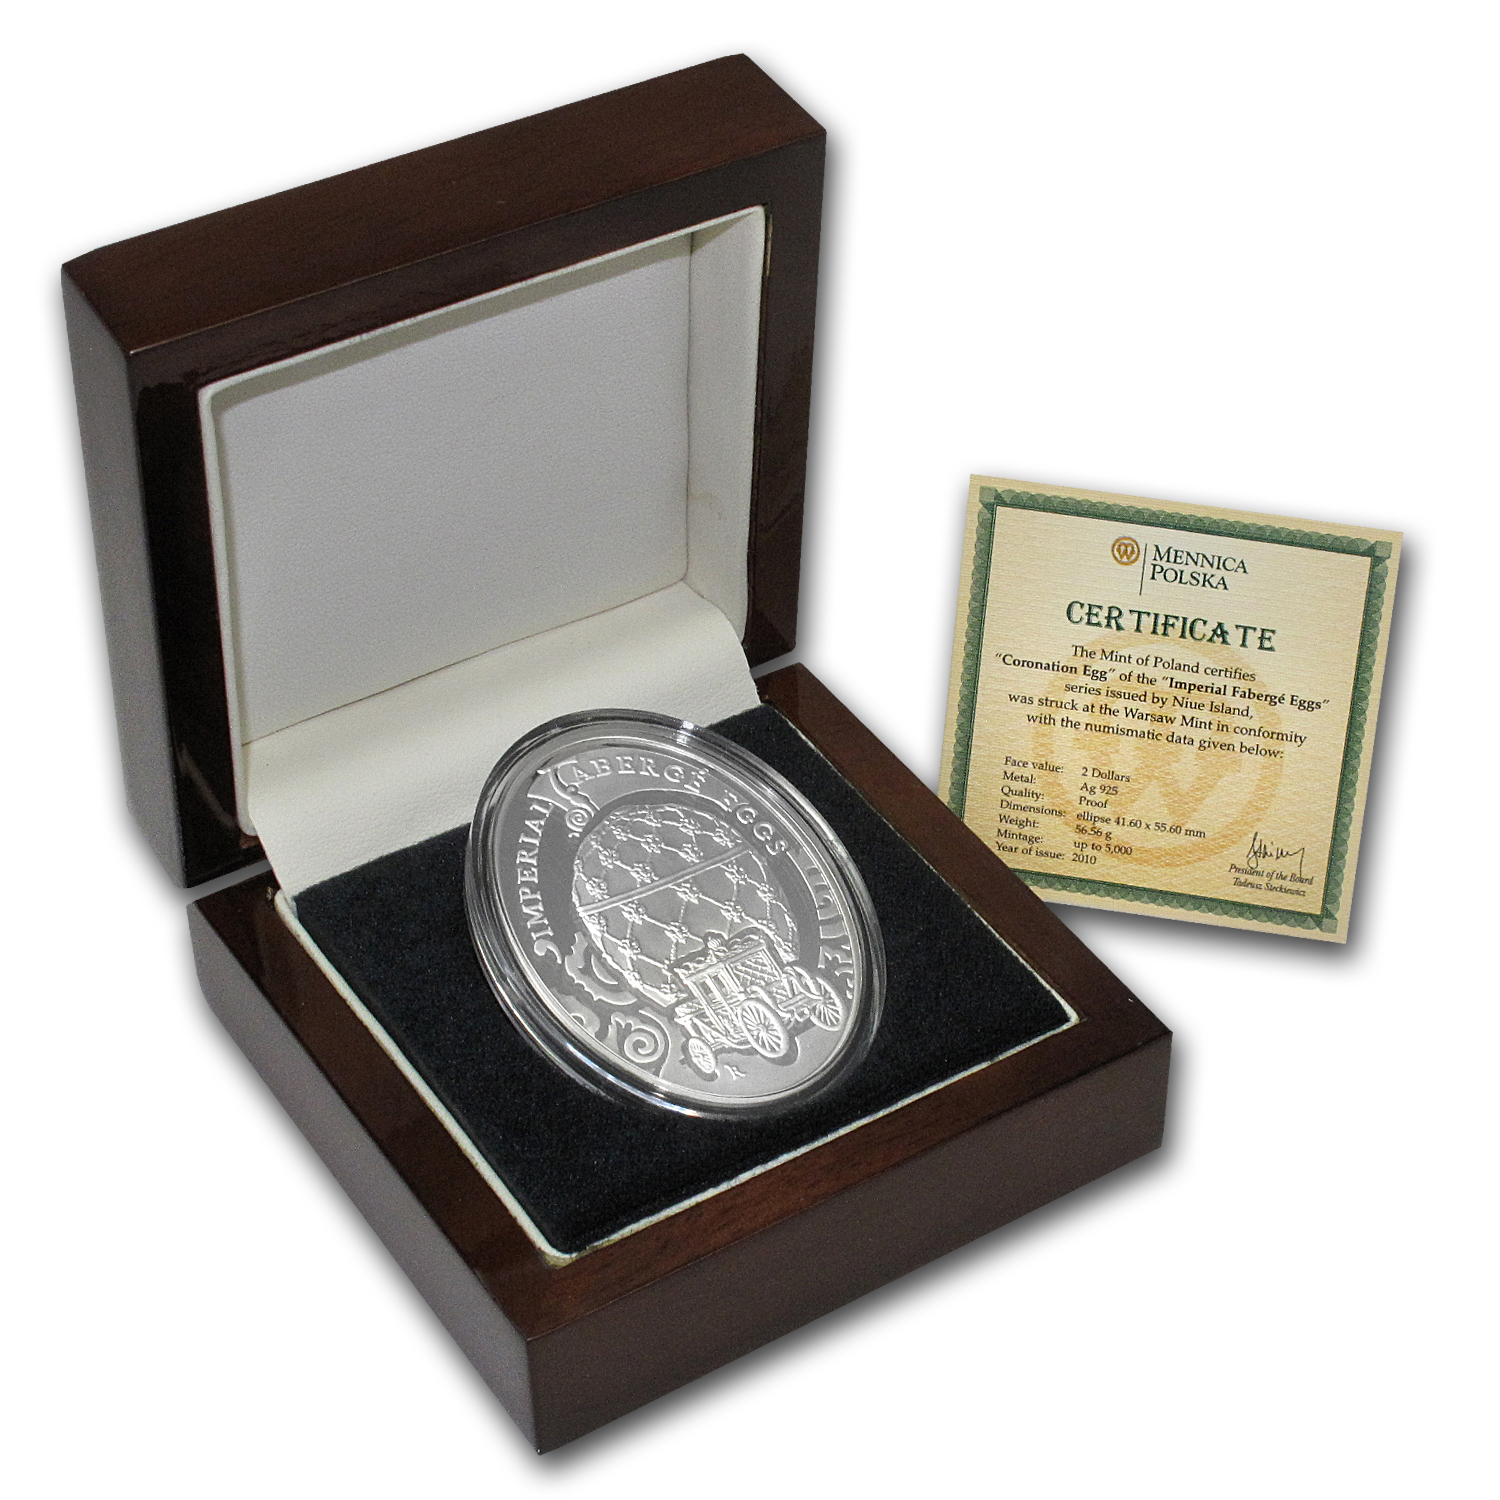 Niue 2010 Proof Silver $2 Imperial Faberge Eggs - Coronation Egg